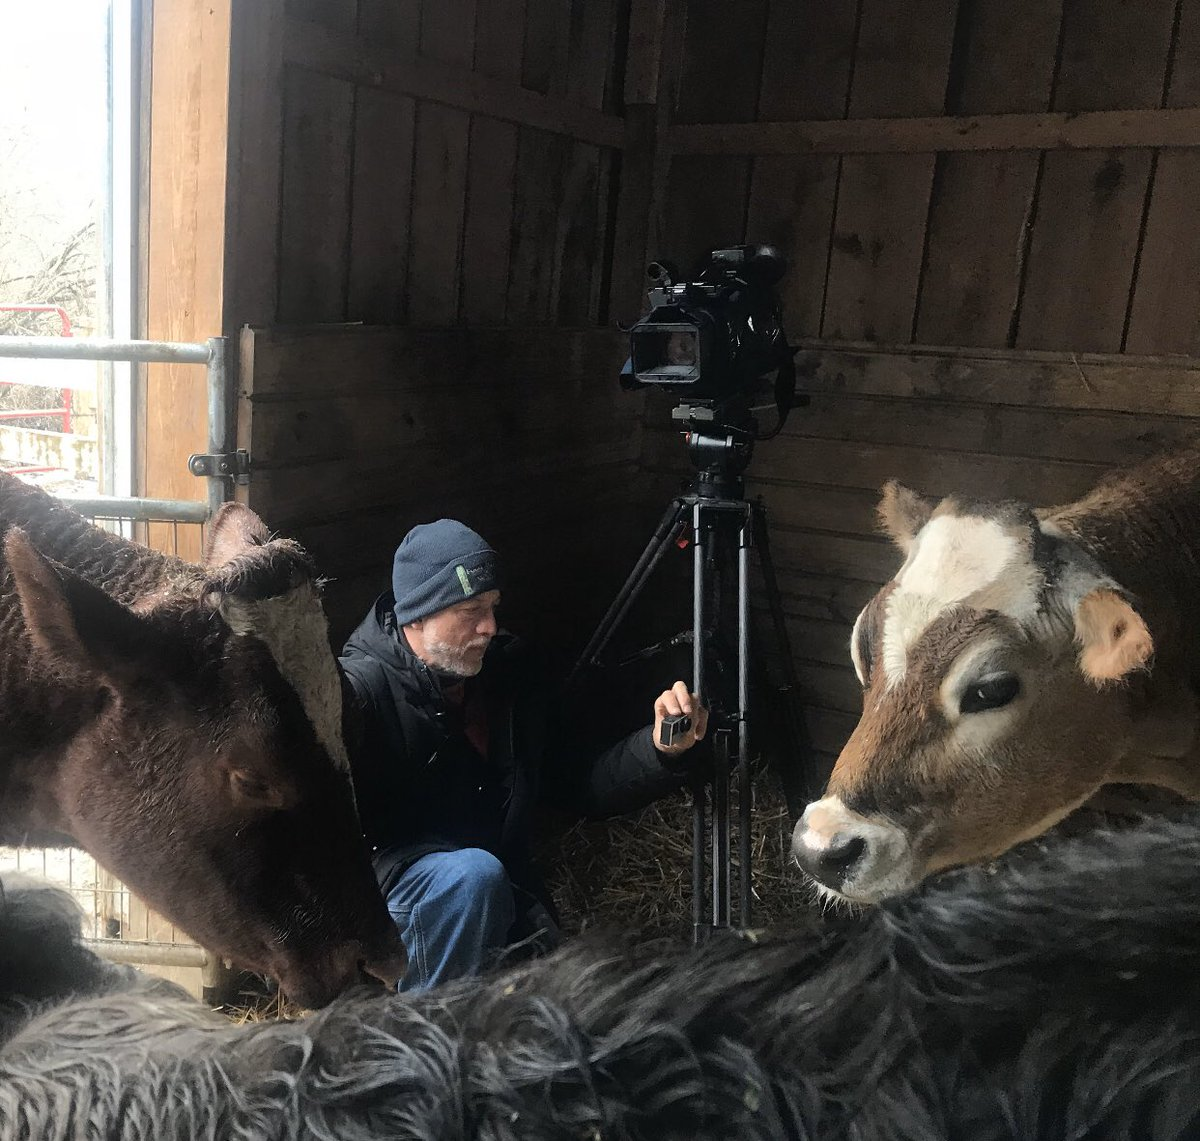 Behind the scenes filming of Asha's Farm Sanctuary's rescued animals for Channel 2's (WGRZ) The Outdoors series. The show is scheduled at 7:20 AM this Sunday! Special thanks to @BelkeTerry Photojournalist and Producer of The Outdoors. @WGRZ @WNYVegFestpic.twitter.com/qEbJsmXVsP